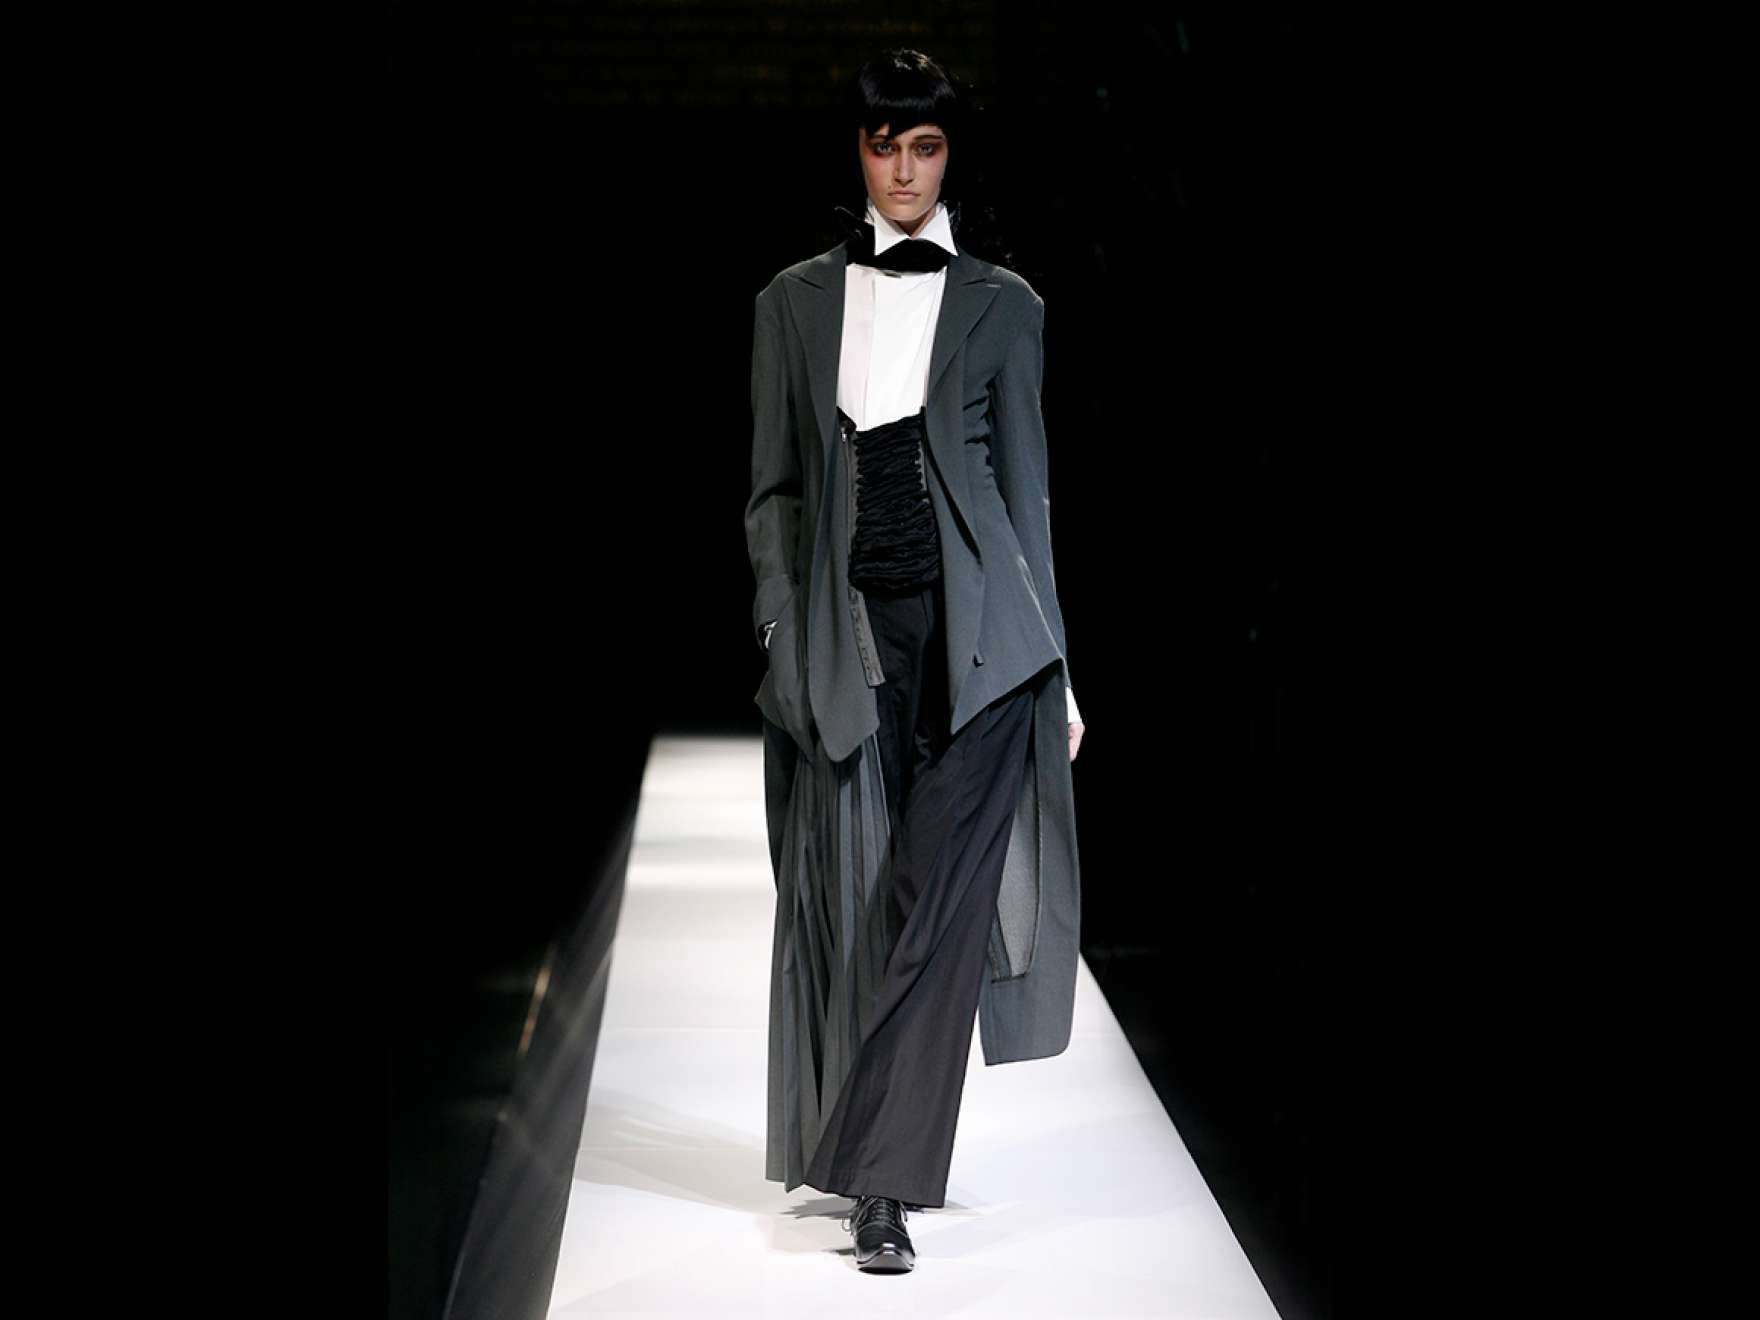 style from Gender Bending Fashion